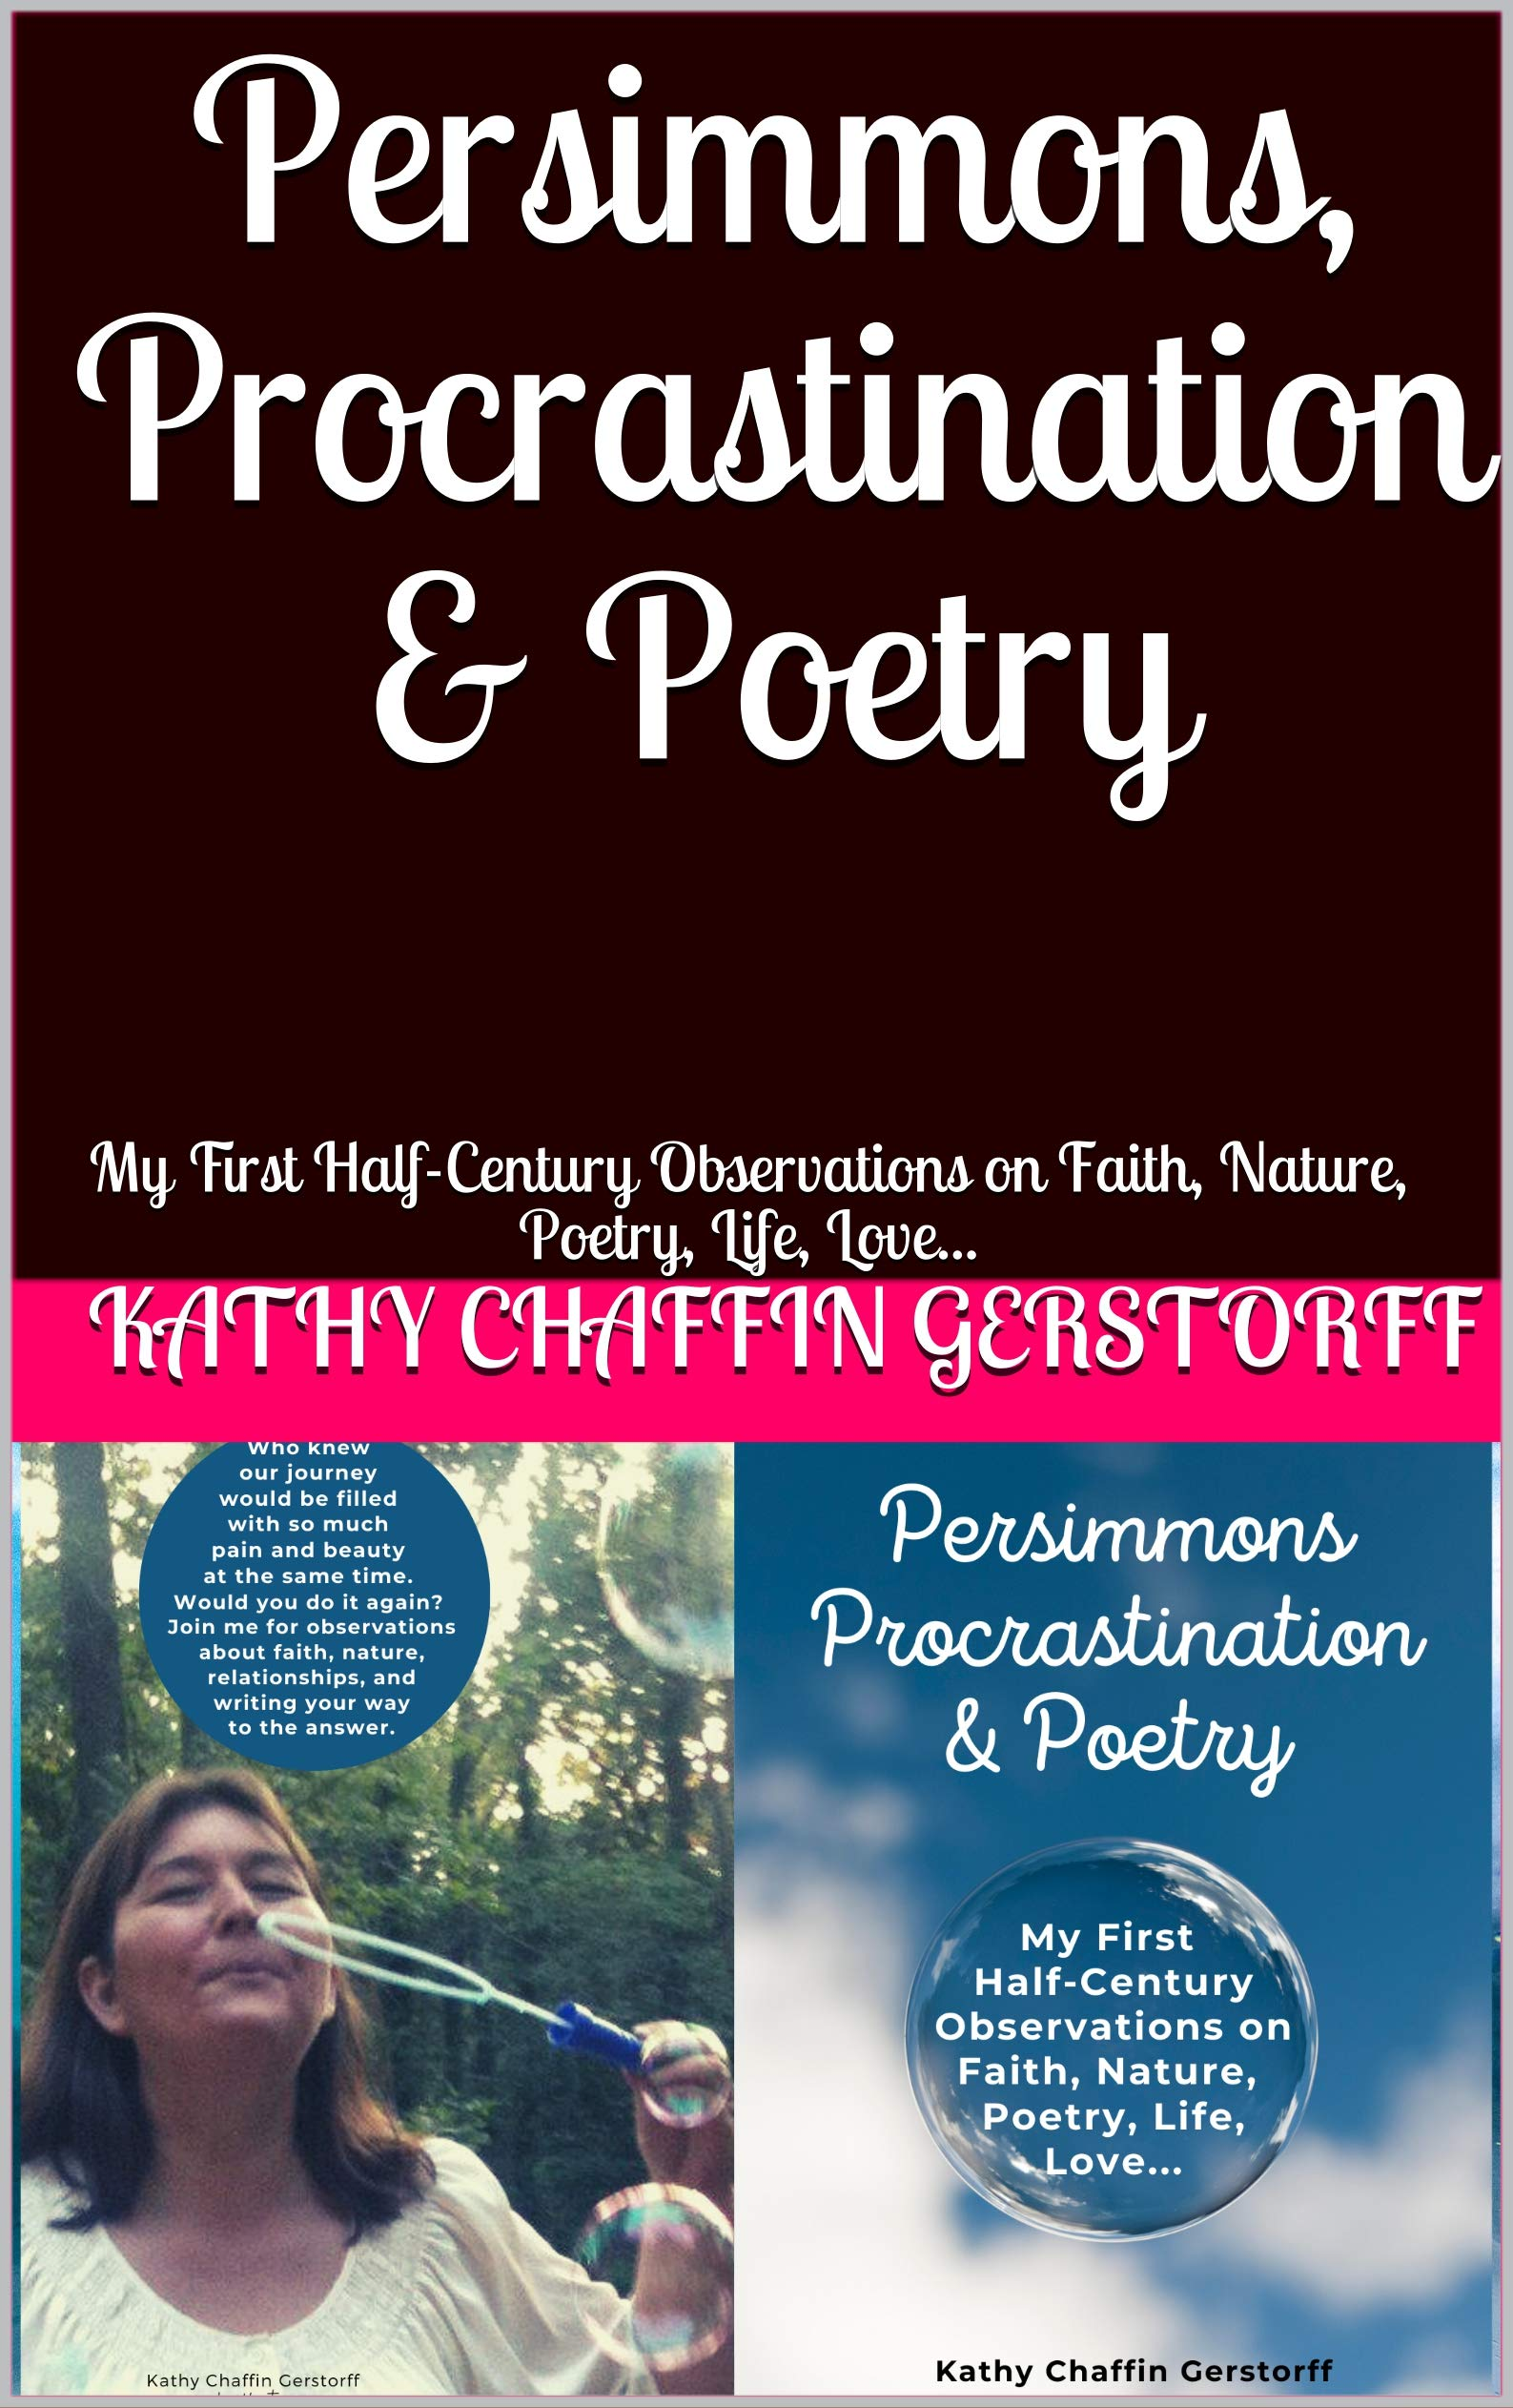 Persimmons, Procrastination & Poetry: My First Half-Century Observations on Faith, Nature, Poetry, Life, Love...